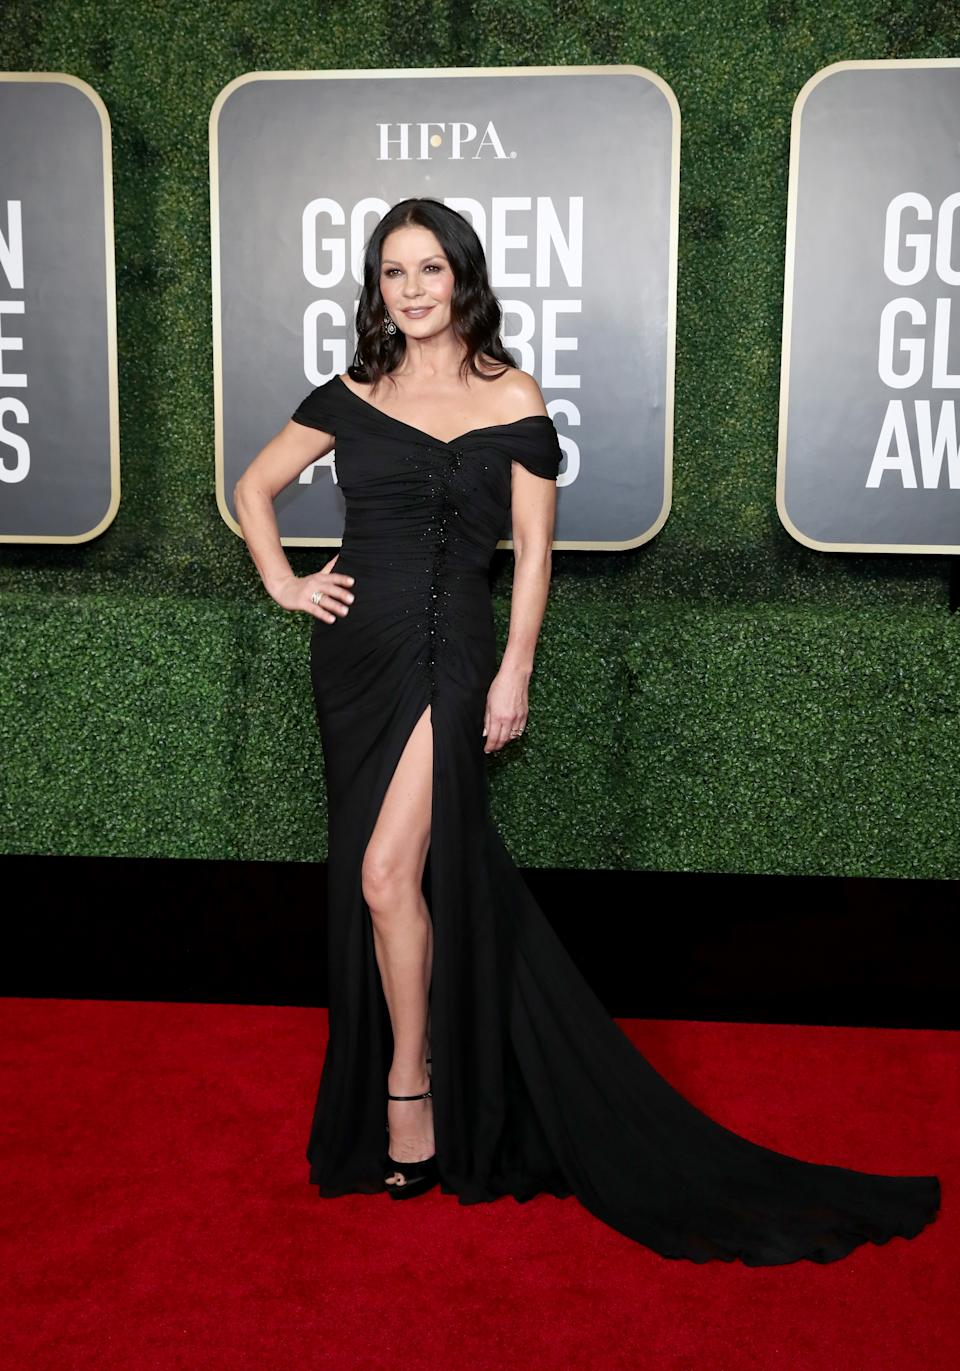 Catherine Zeta-Jones attends the 78th Annual Golden Globe Awards held at The Rainbow Room and broadcast on February 28, 2021 in New York, New York